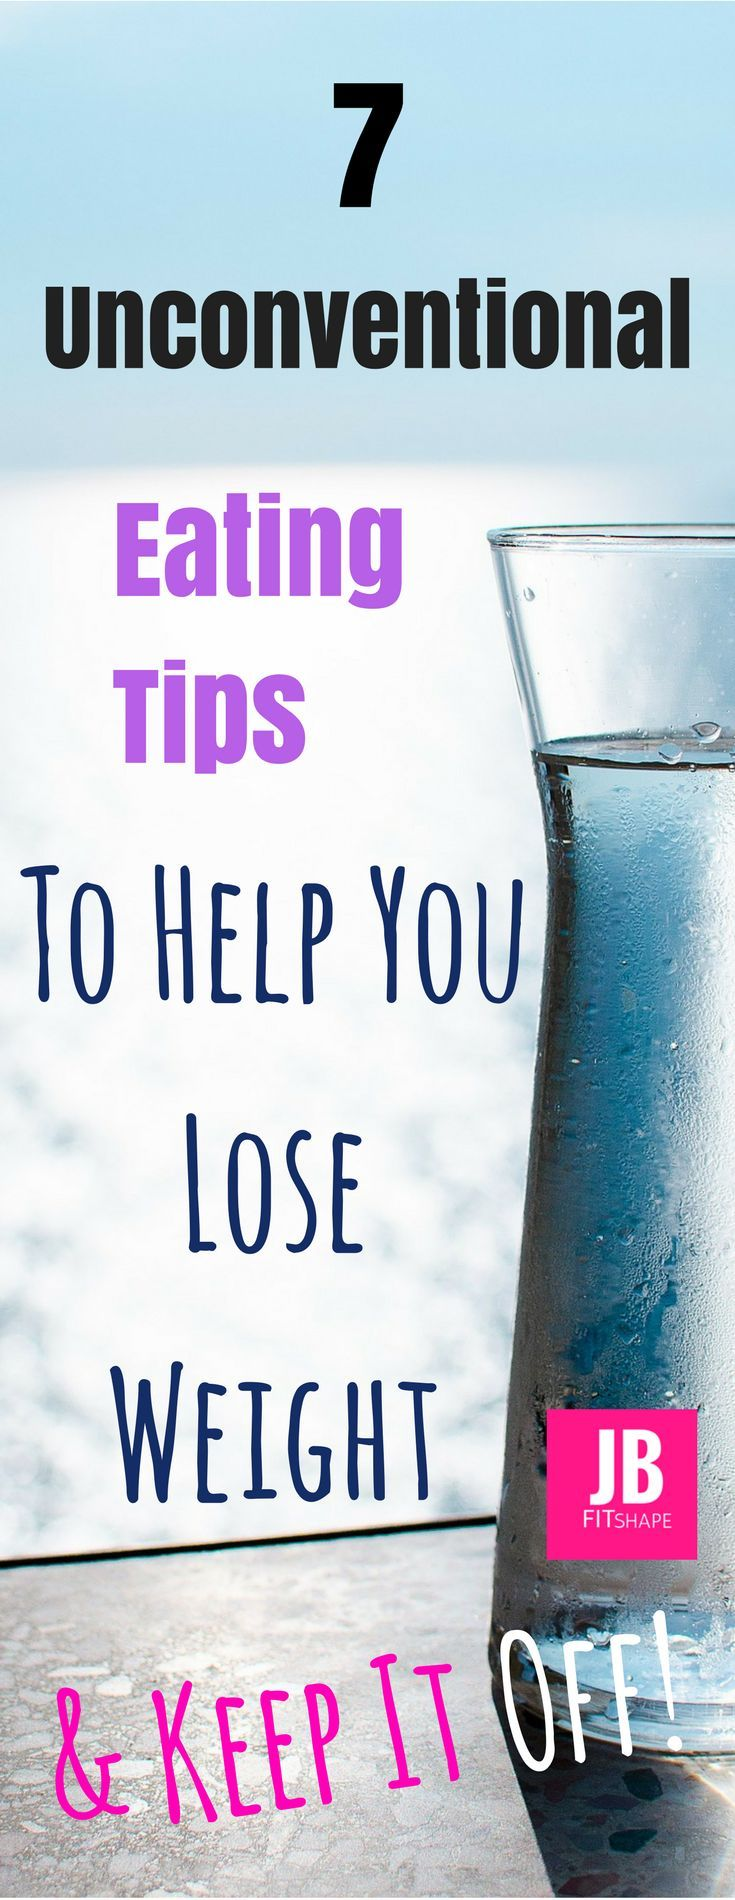 7 Unconventional Eating Tips to Help You Lose Weight & Keep It Off!  #weightloss#dietplan#eatingtips#loseweightandkeepitoff https://jbfitshape.wordpress.com/2017/12/01/7-unconventional-eating-tips-to-help-you-lose-weight-keep-it-off/